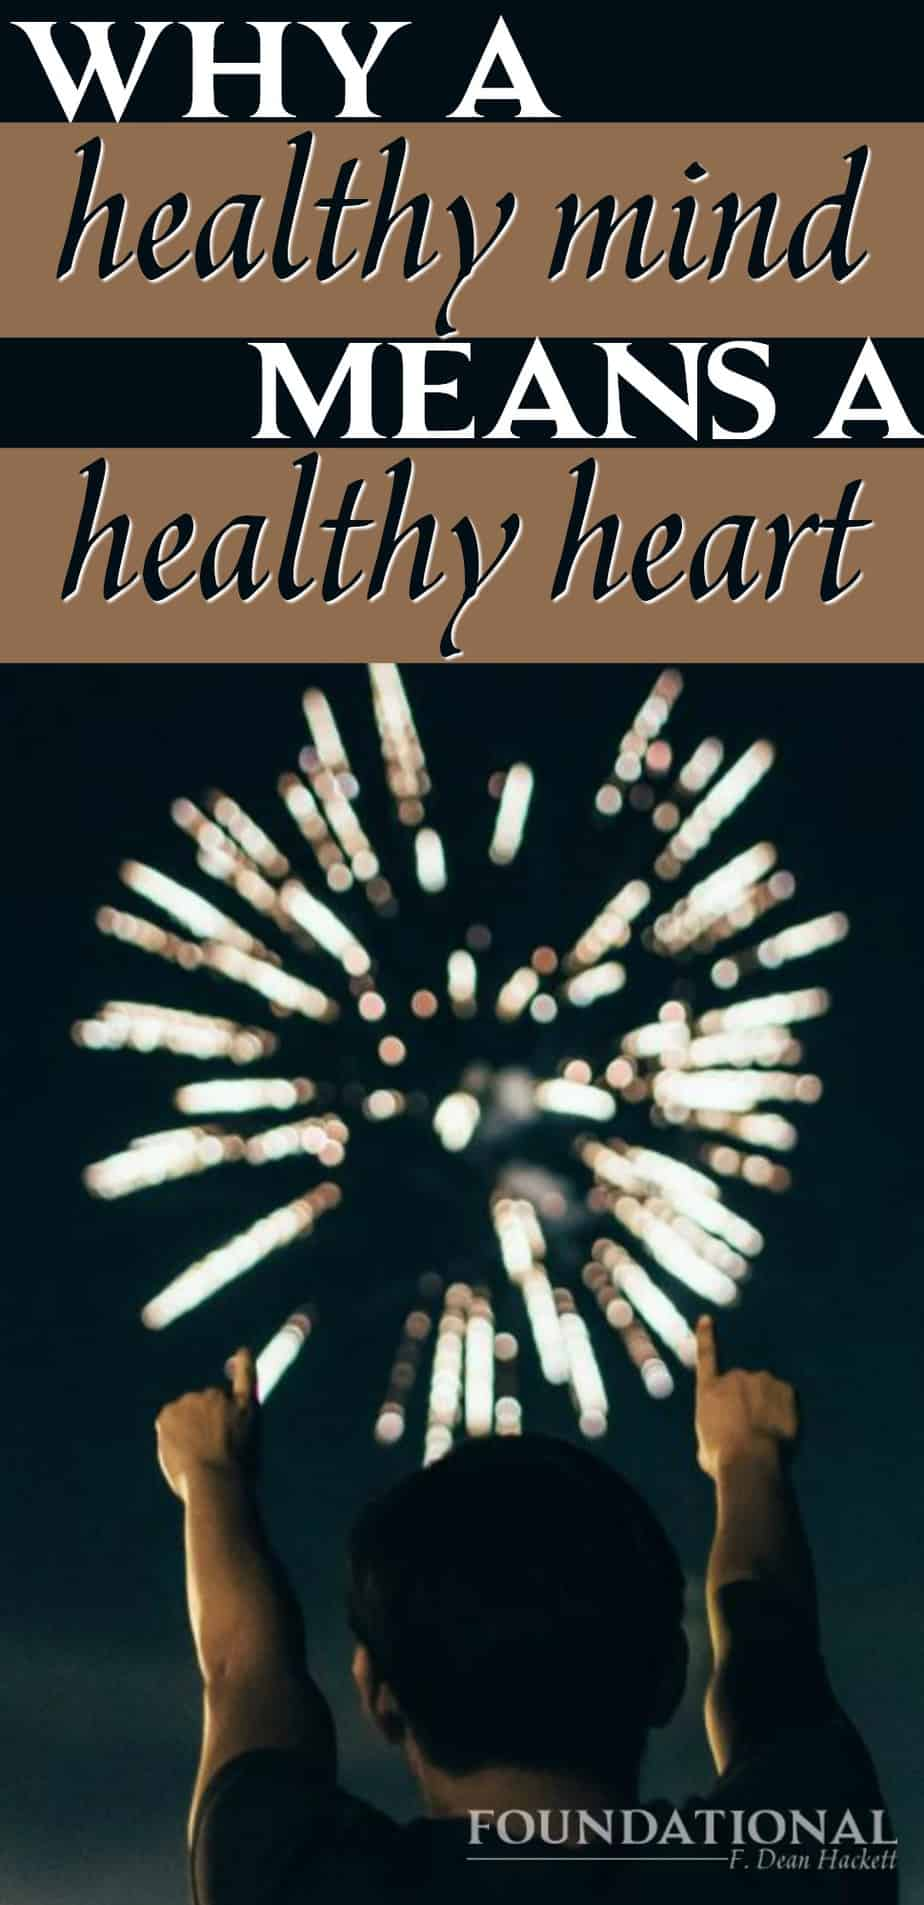 Studies show that head trauma can lead to cardiovascular problems. The same can be said for a healthy mind. A healthy mind means a healthy heart. Here's why